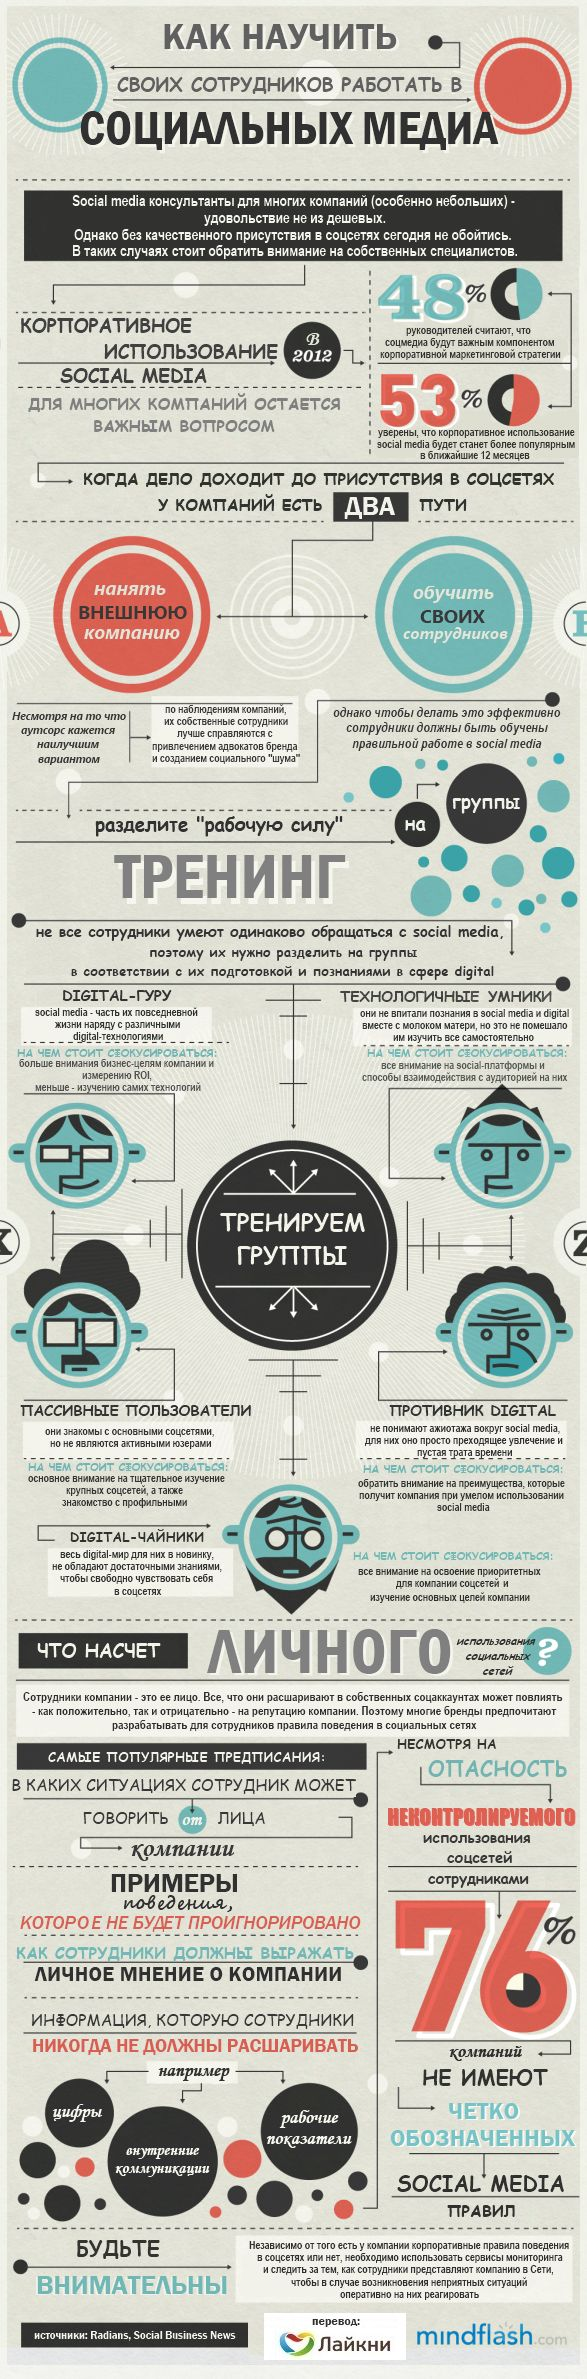 http://www.likeni.ru/upload/2012/How-To-Train-Employees-To-Handle-Social-Media-infographic.png